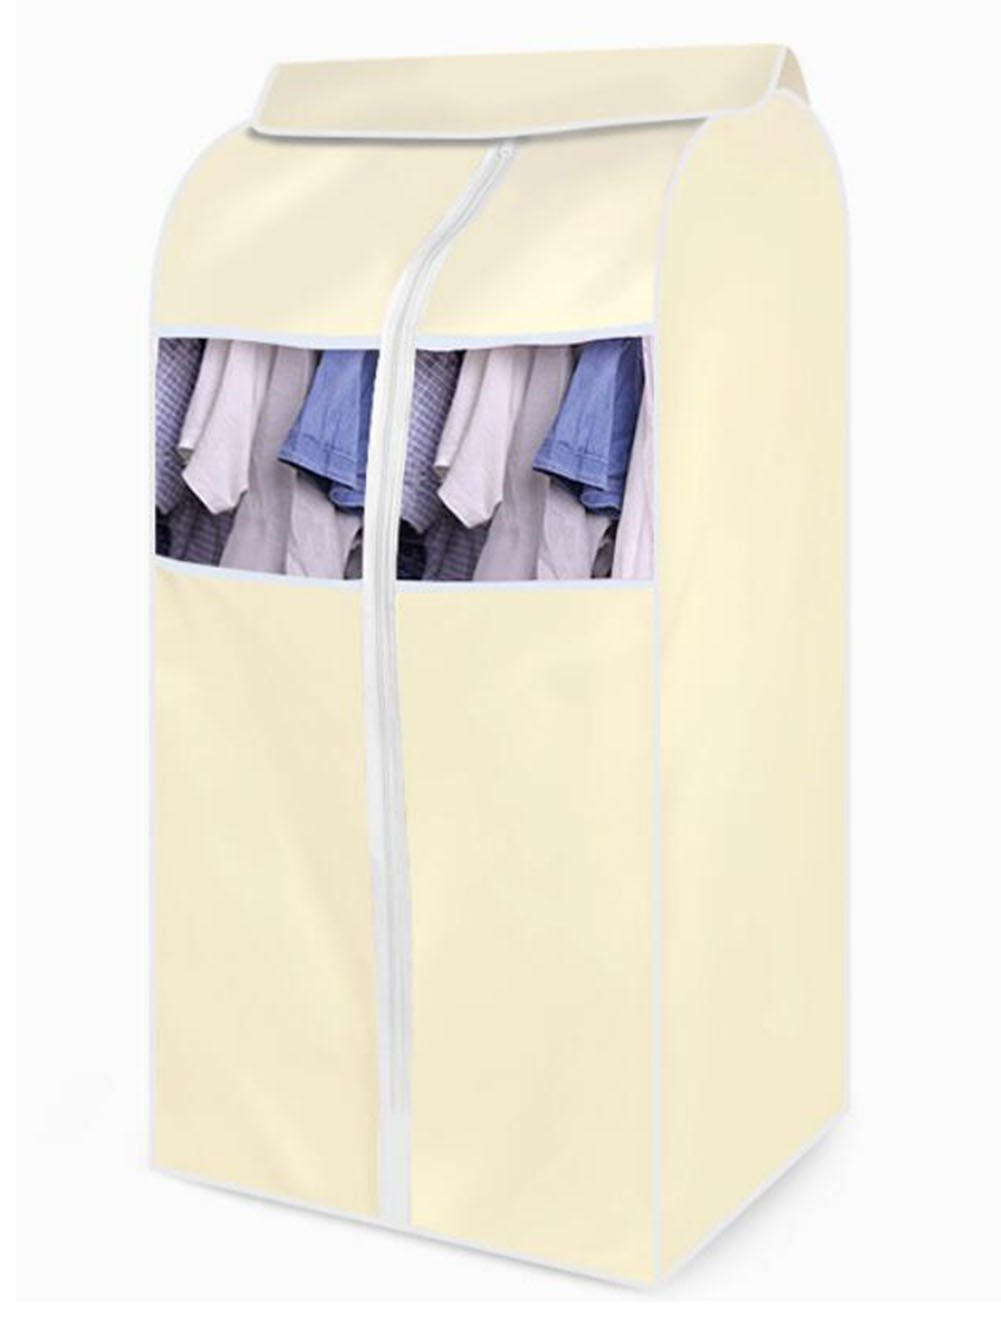 Hosaire Garment Cover Clothes Cover Bag Nylon Oxford Fabric Storage Suit Bag Hanging Clothes Bag Clothes Dust Cover Yellow